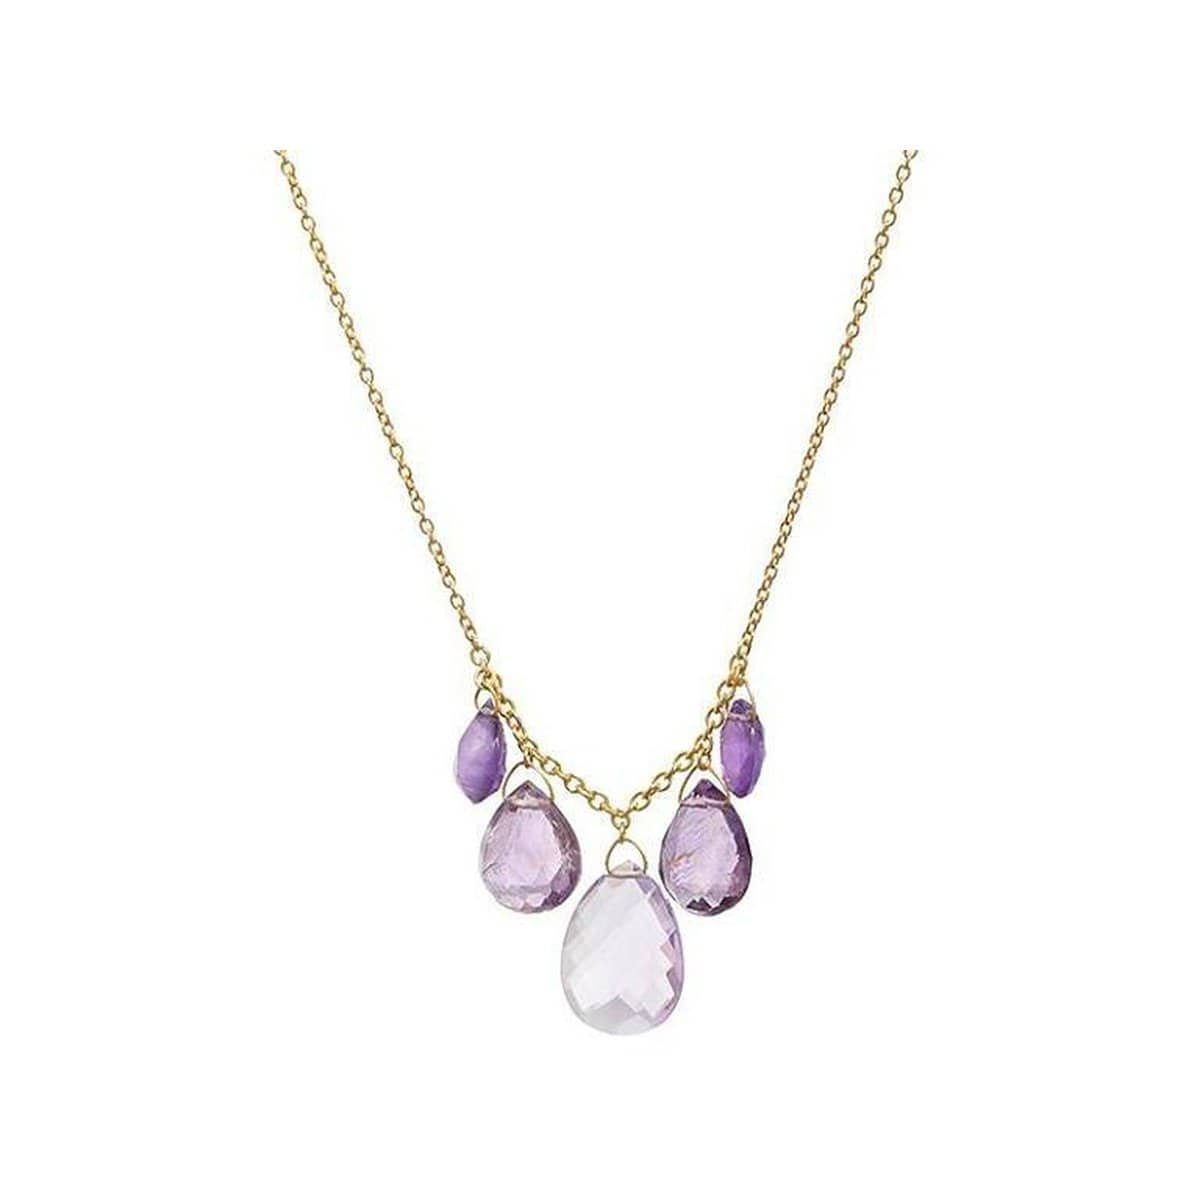 Delicate Hue 22K Gold Amethyst Necklace - N-U24991-AM